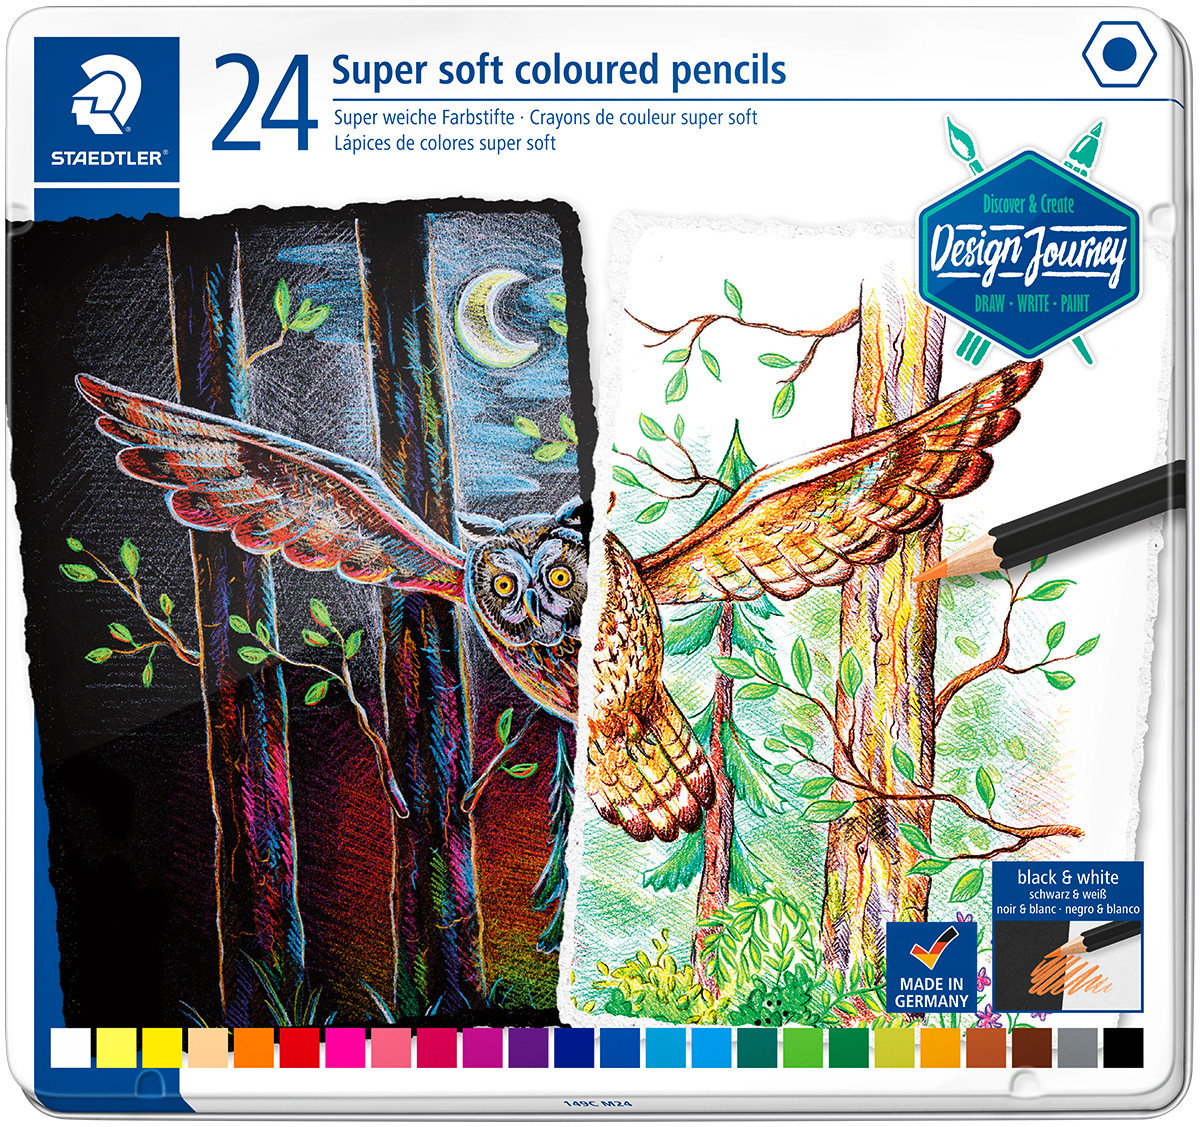 Staedtler Super Soft Colouring Pencils - Assorted Colours (Tin of 24)